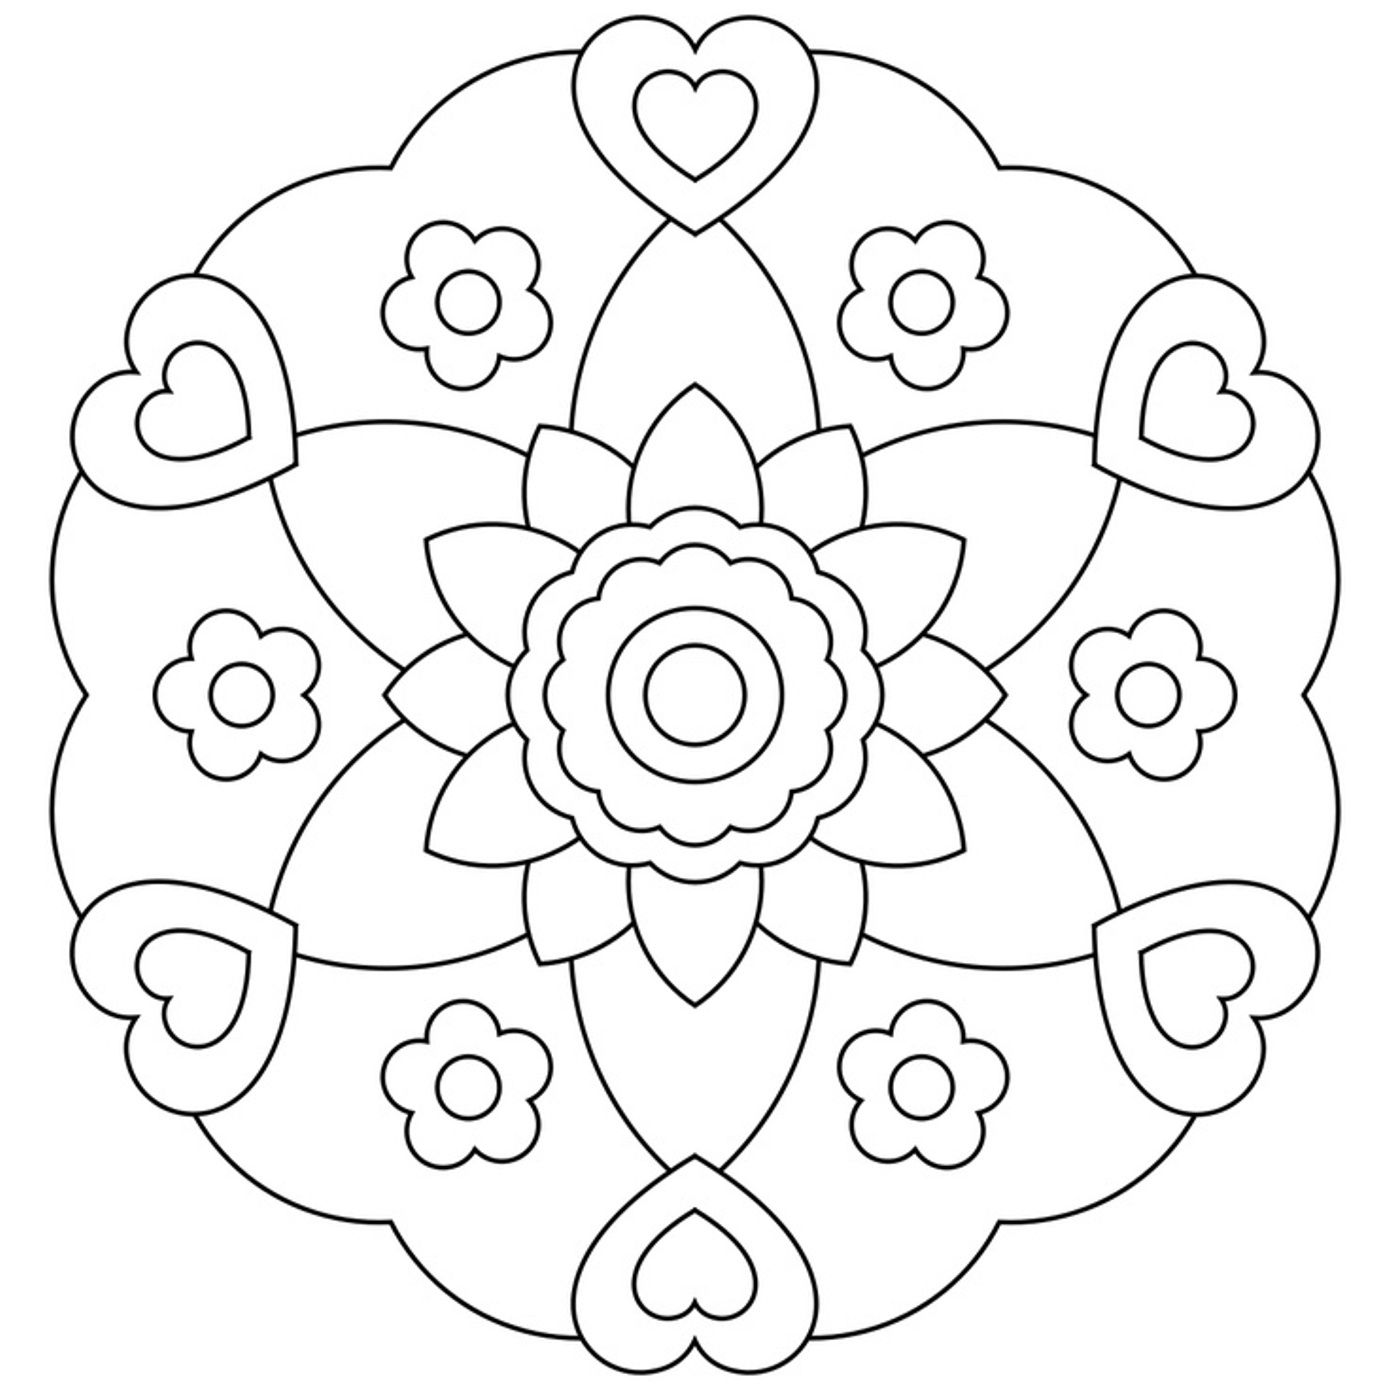 Exceptionnel Flowerish Mandala Coloring Pages